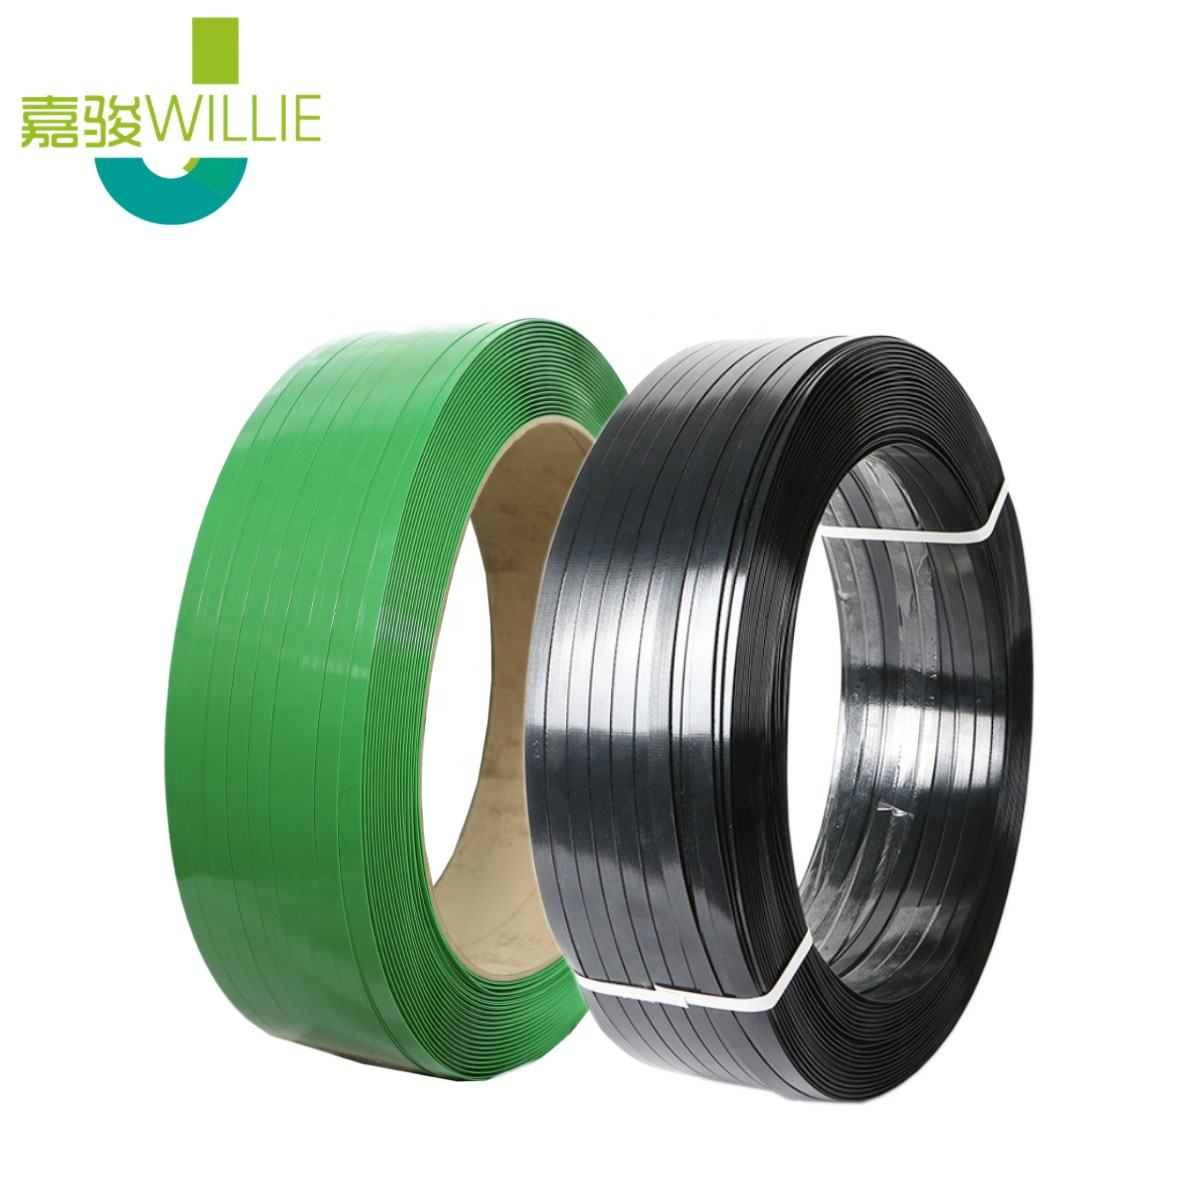 Carton Box Plastic Packing Strip Green Transparent Black Embossed 160060 Polyester Strap For Fbalers